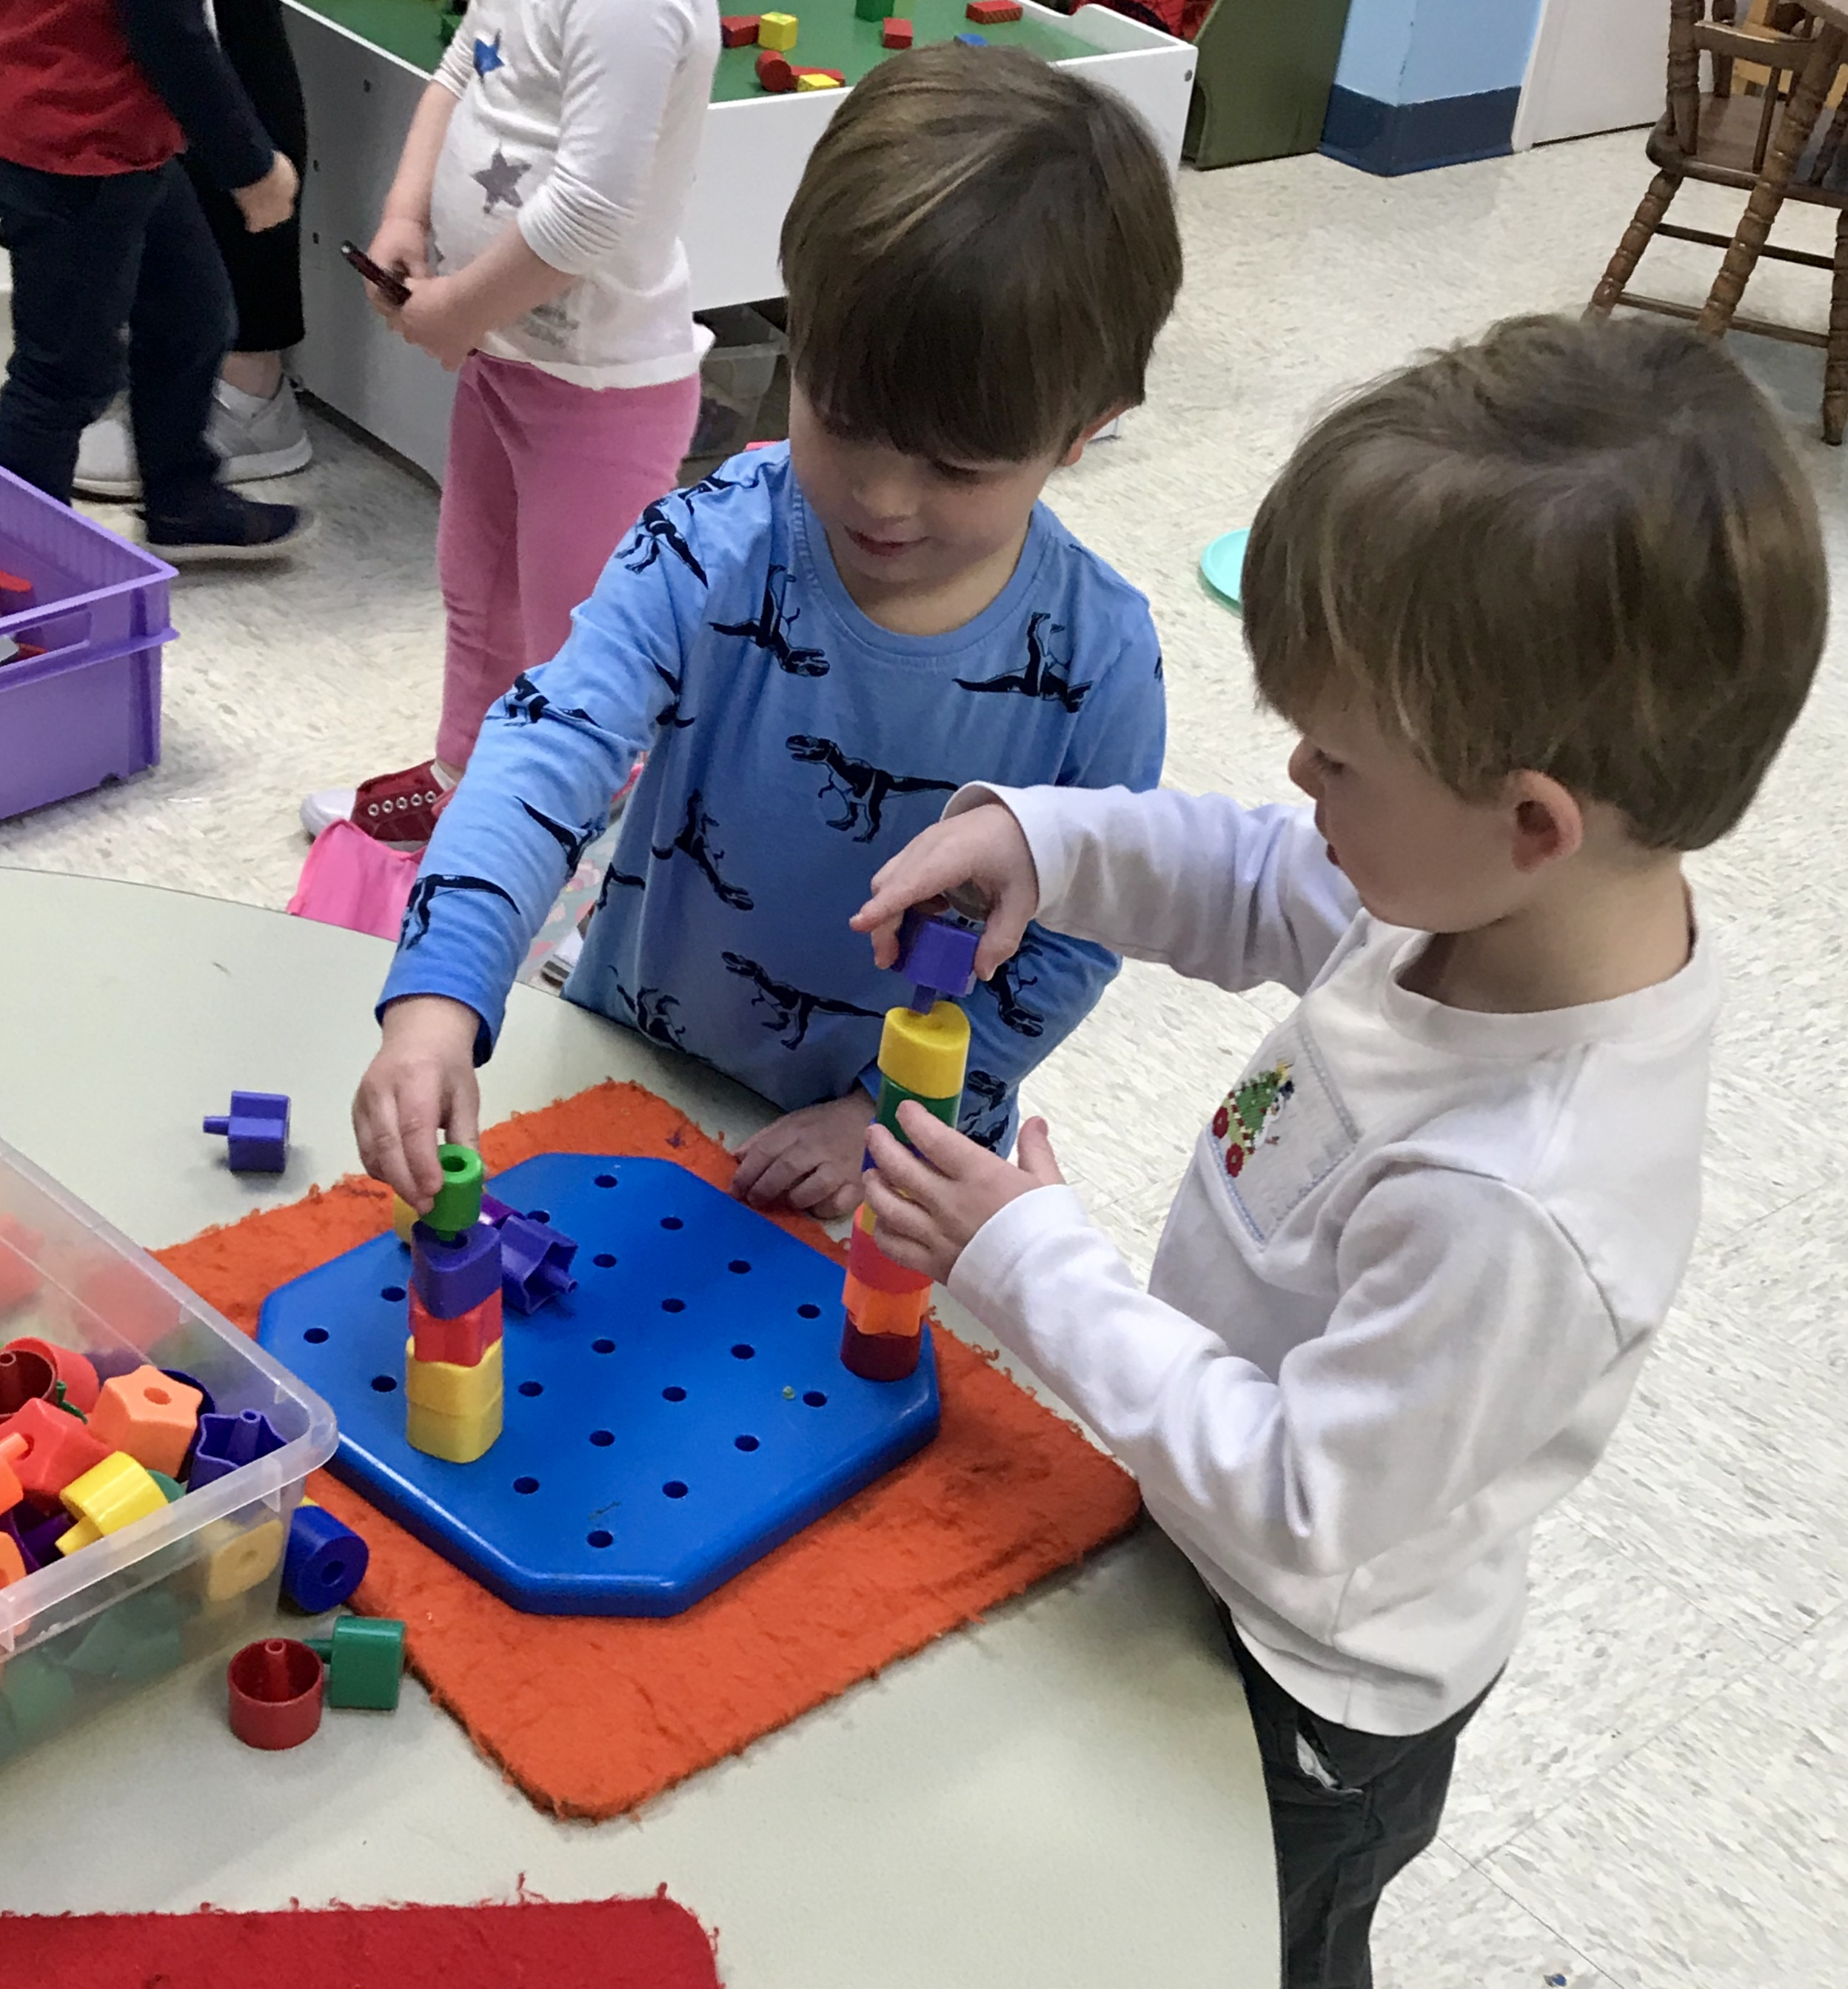 Building with stackable blocks.